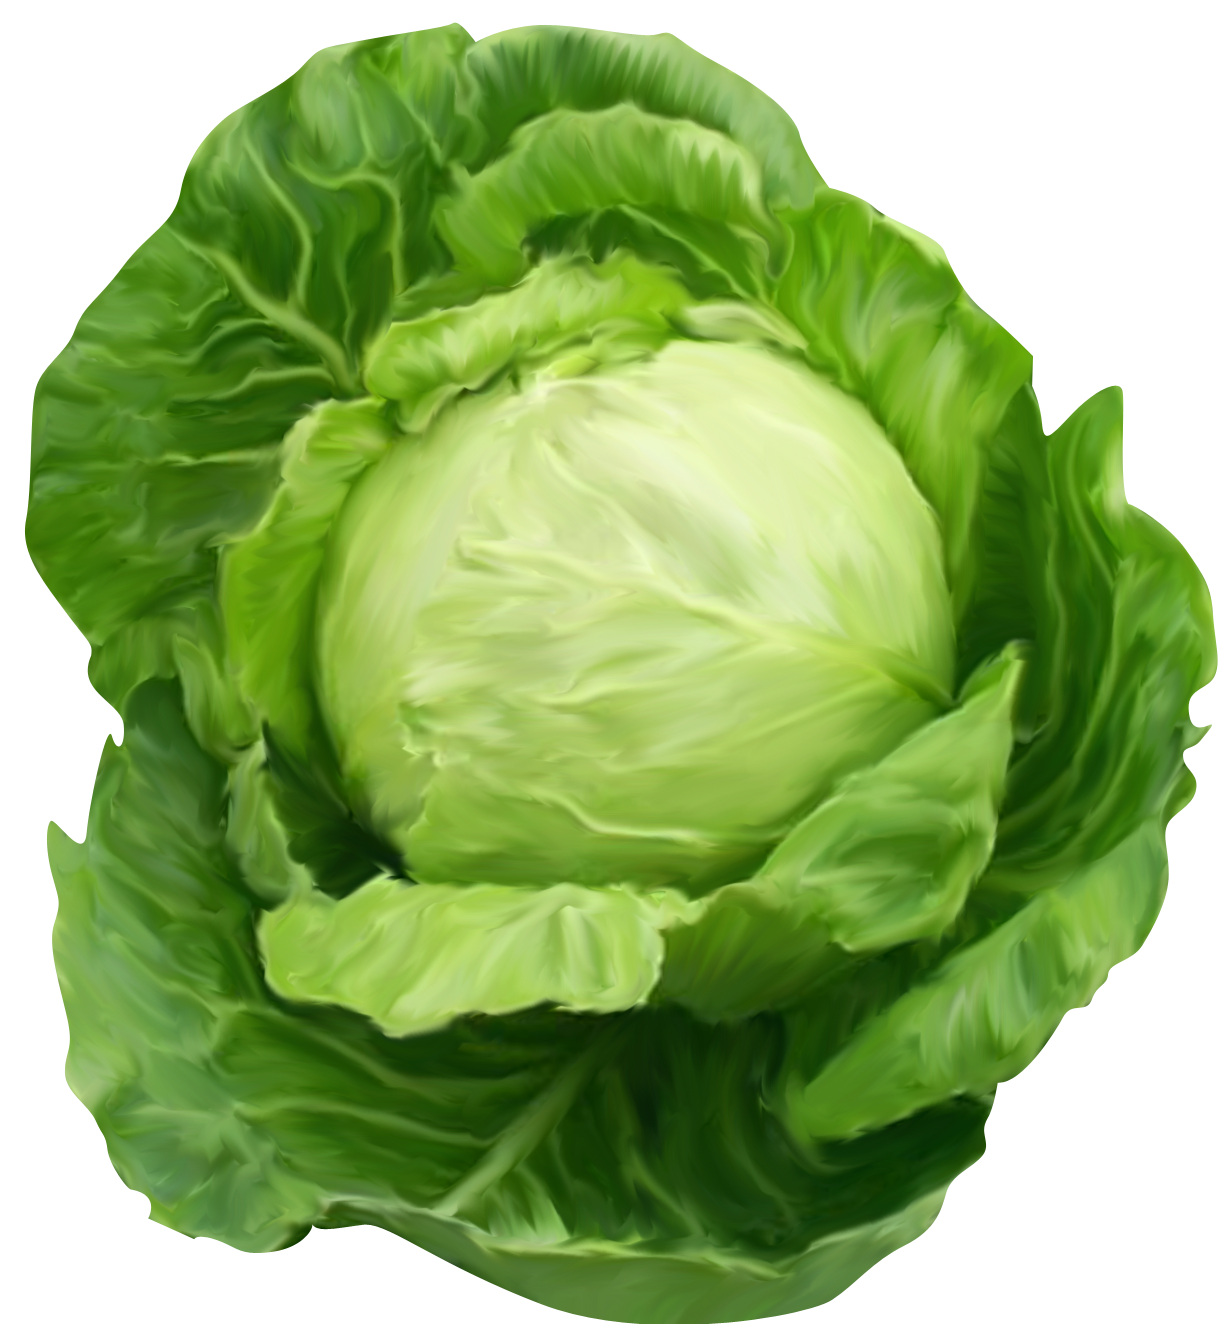 Cabbage_Clipart_Picture.png?m=1399672800.